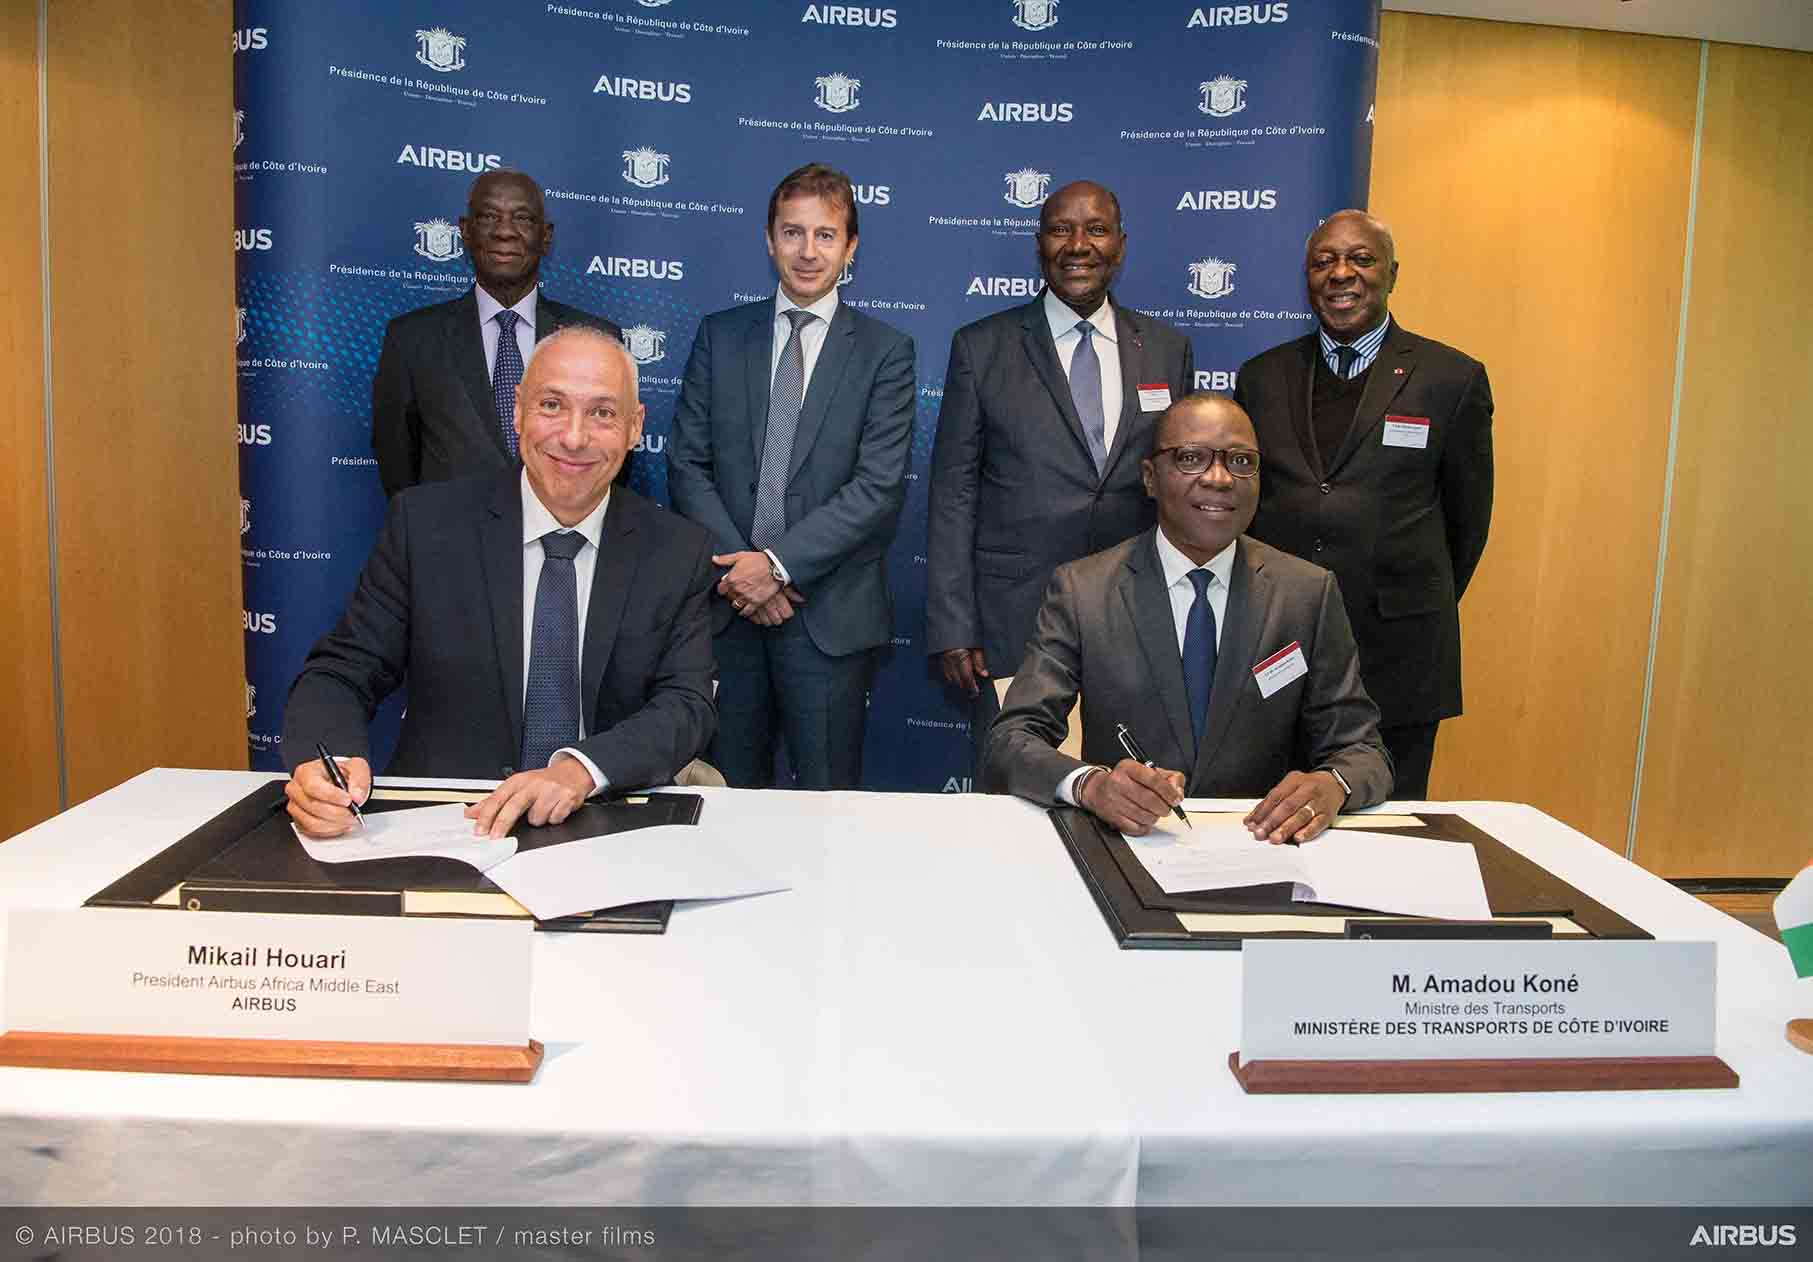 Airbus enters partnership with government of Côte d'Ivoire